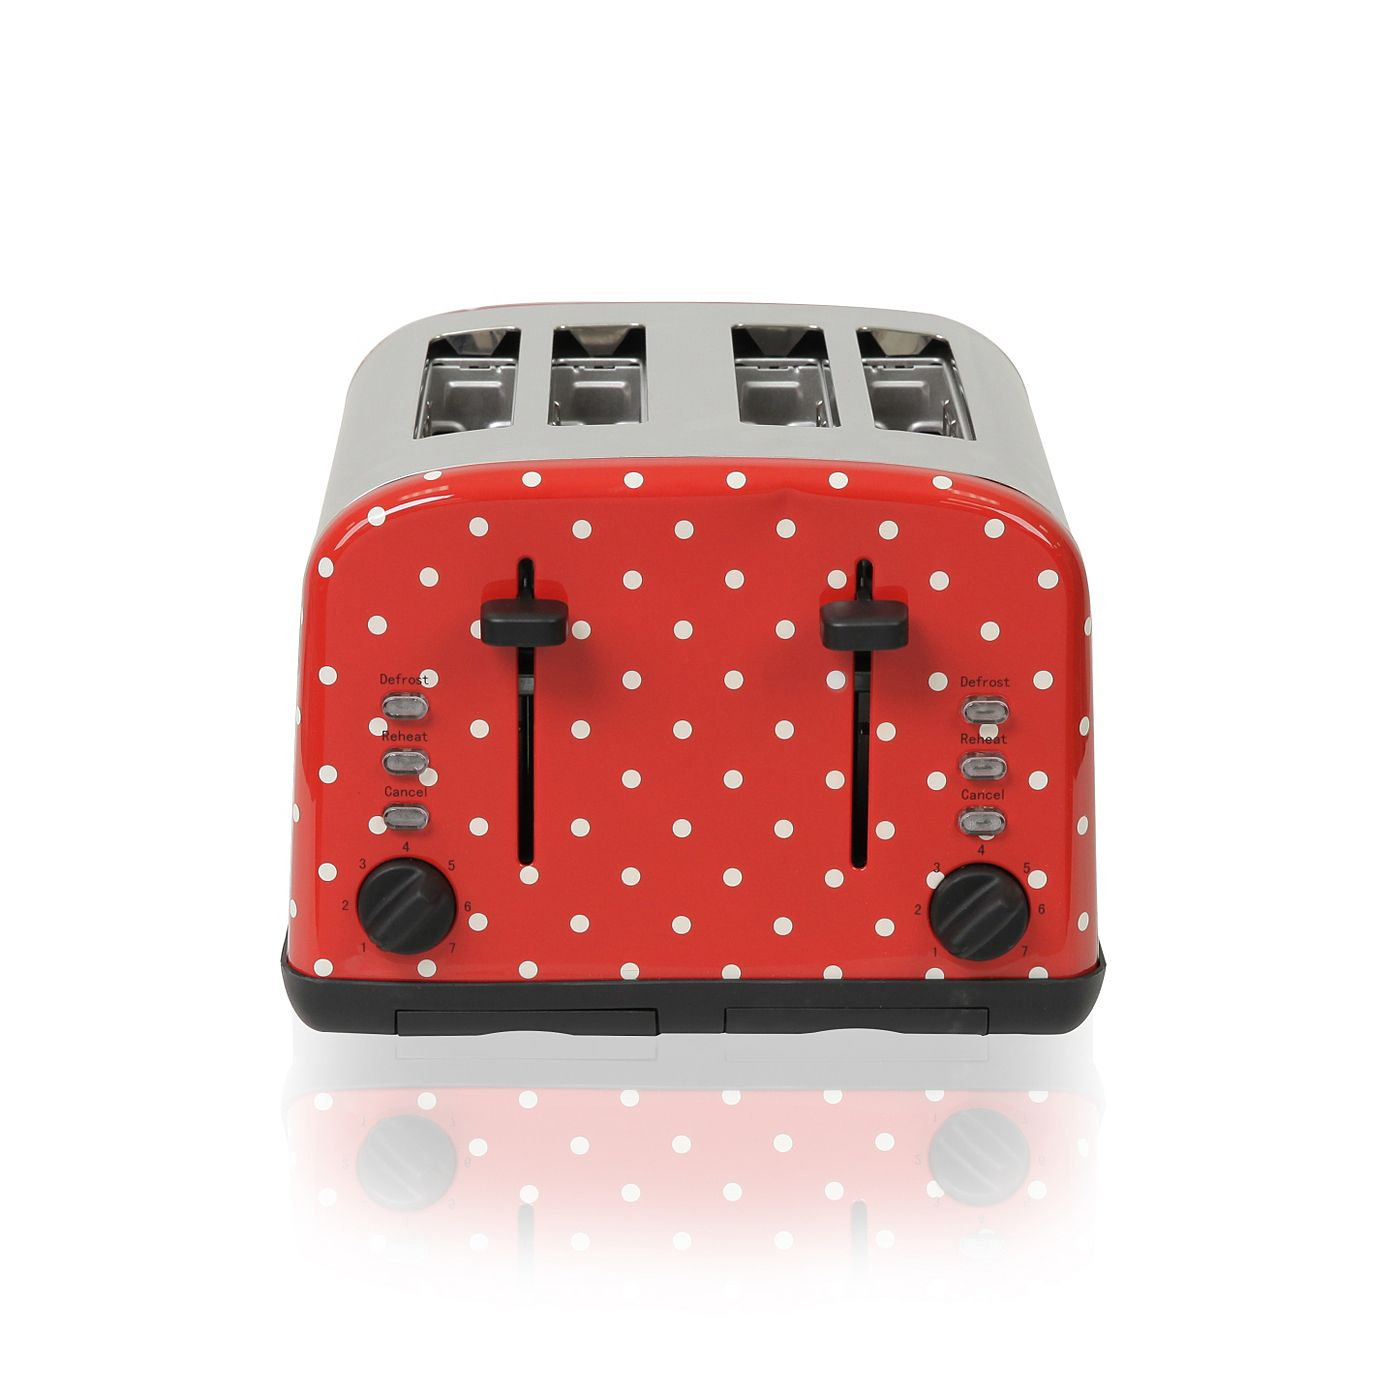 Uncategorized Asda Kitchen Appliances george home 4 slice toaster polka dot toasters asda direct direct